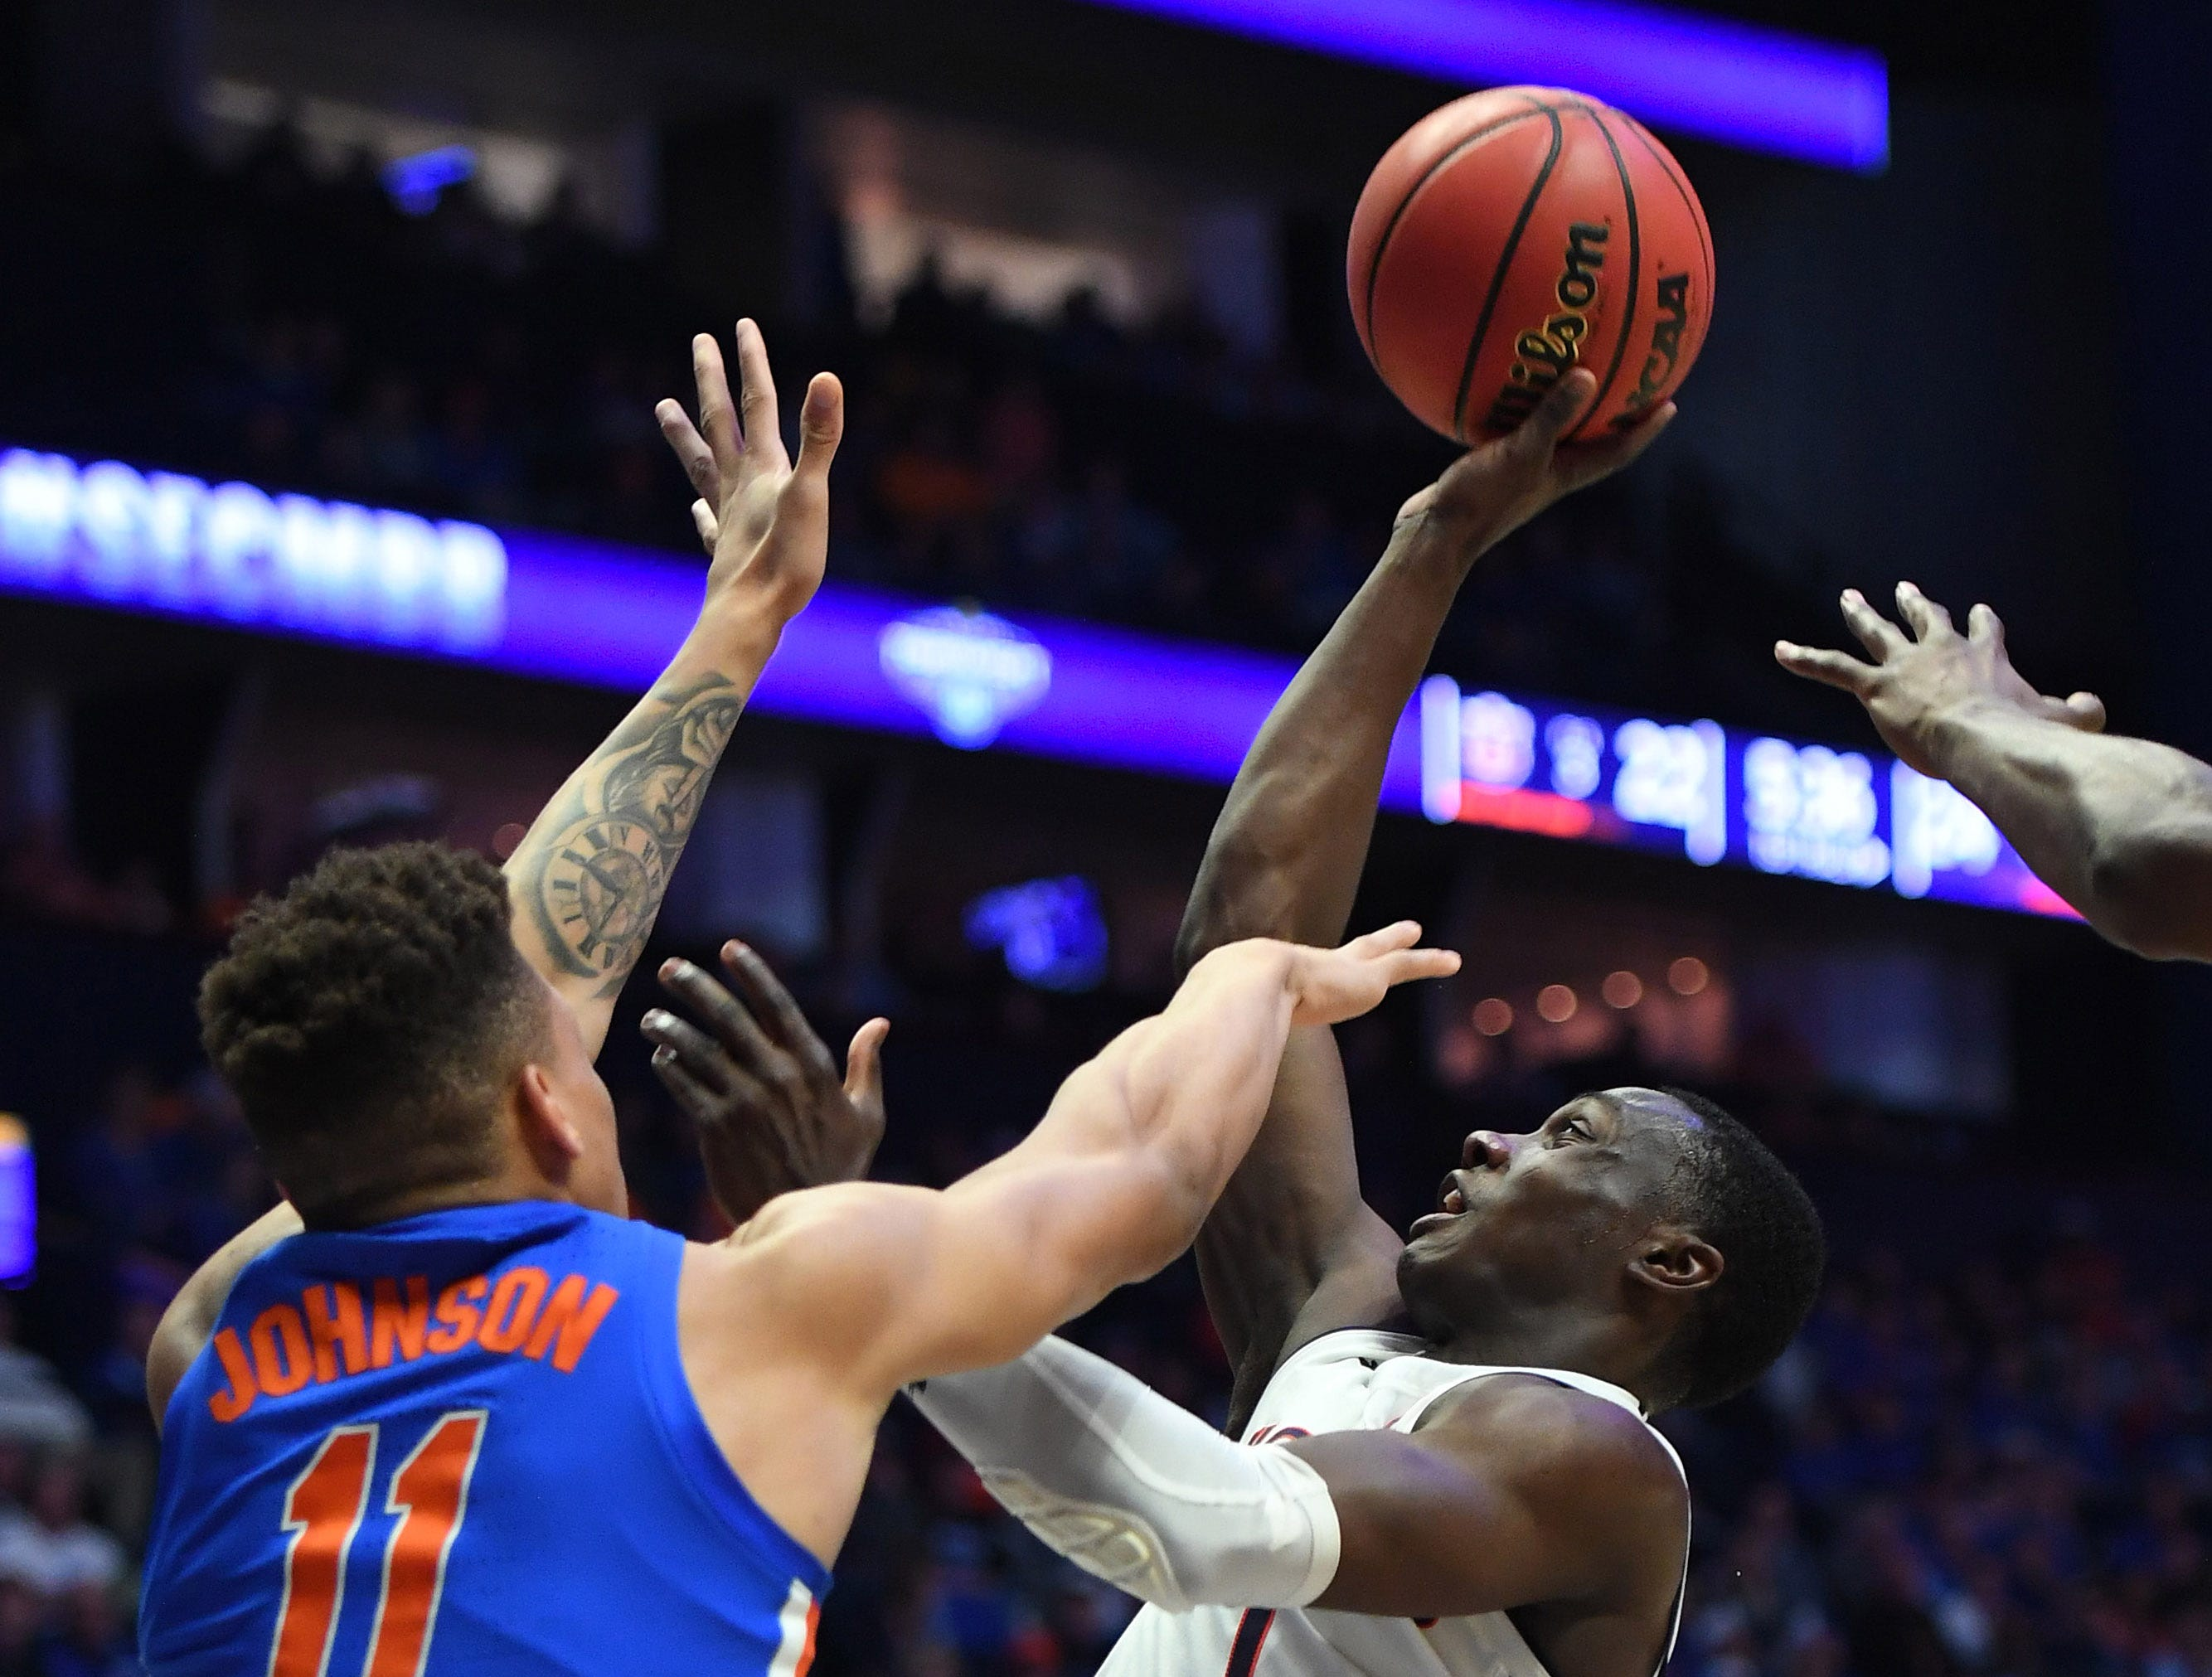 Mar 16, 2019; Nashville, TN, USA; Auburn Tigers guard Jared Harper (1) shoots the ball as Florida Gators forward Keyontae Johnson (11) defends during the first half of the SEC conference tournament at Bridgestone Arena. Mandatory Credit: Christopher Hanewinckel-USA TODAY Sports